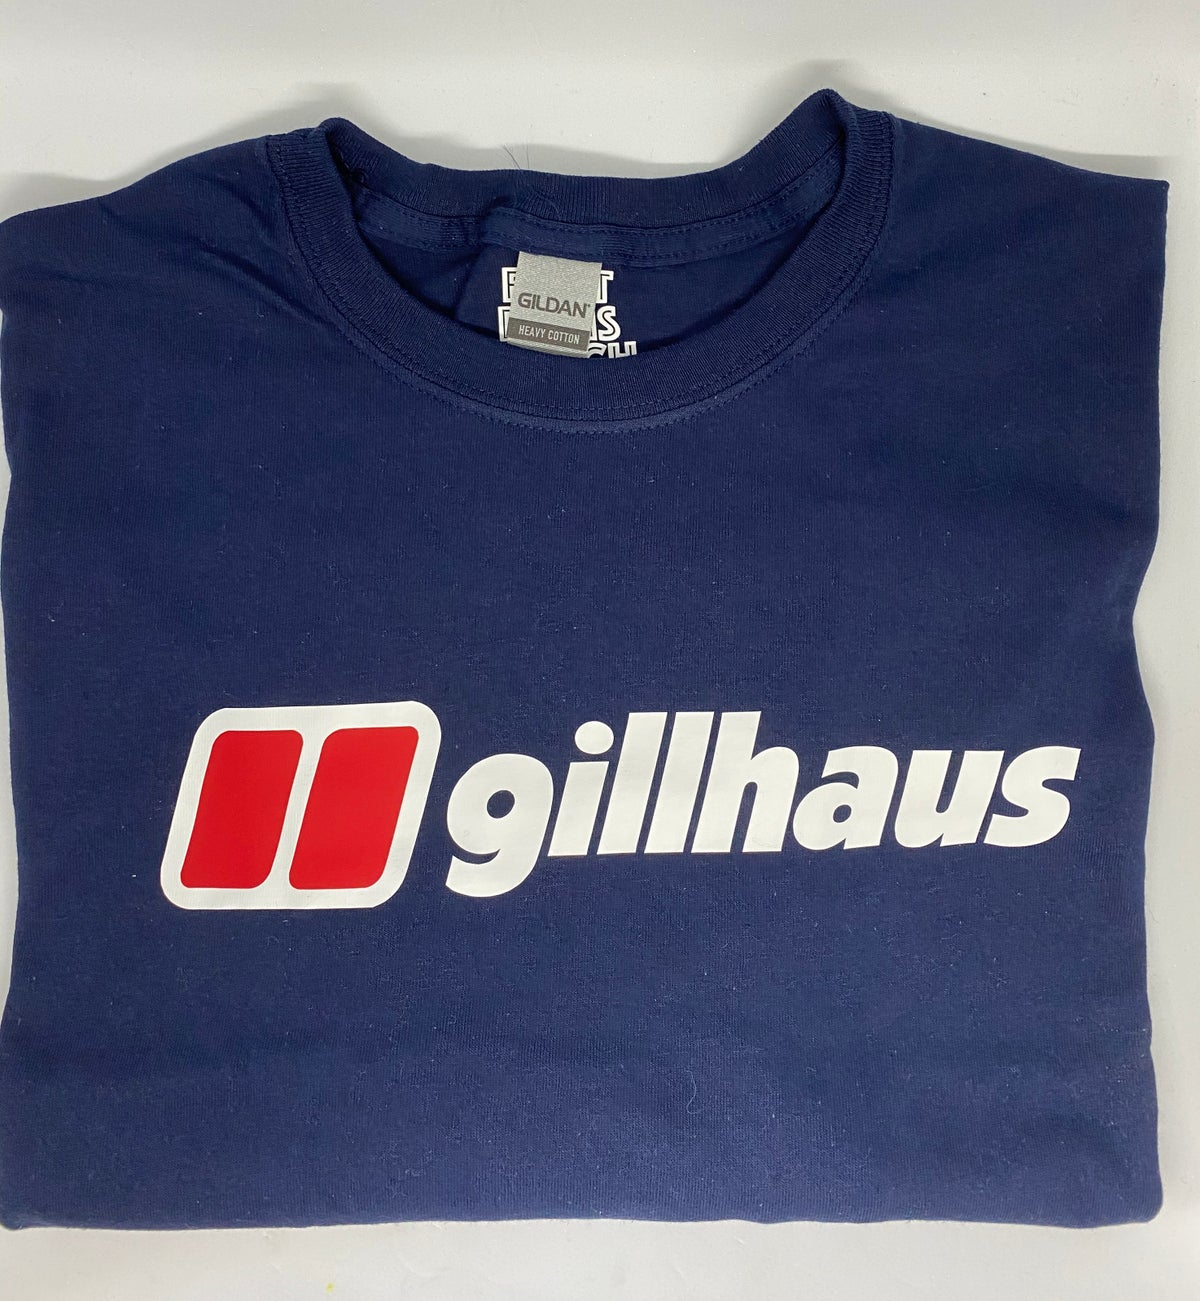 Image of Gillhaus tee